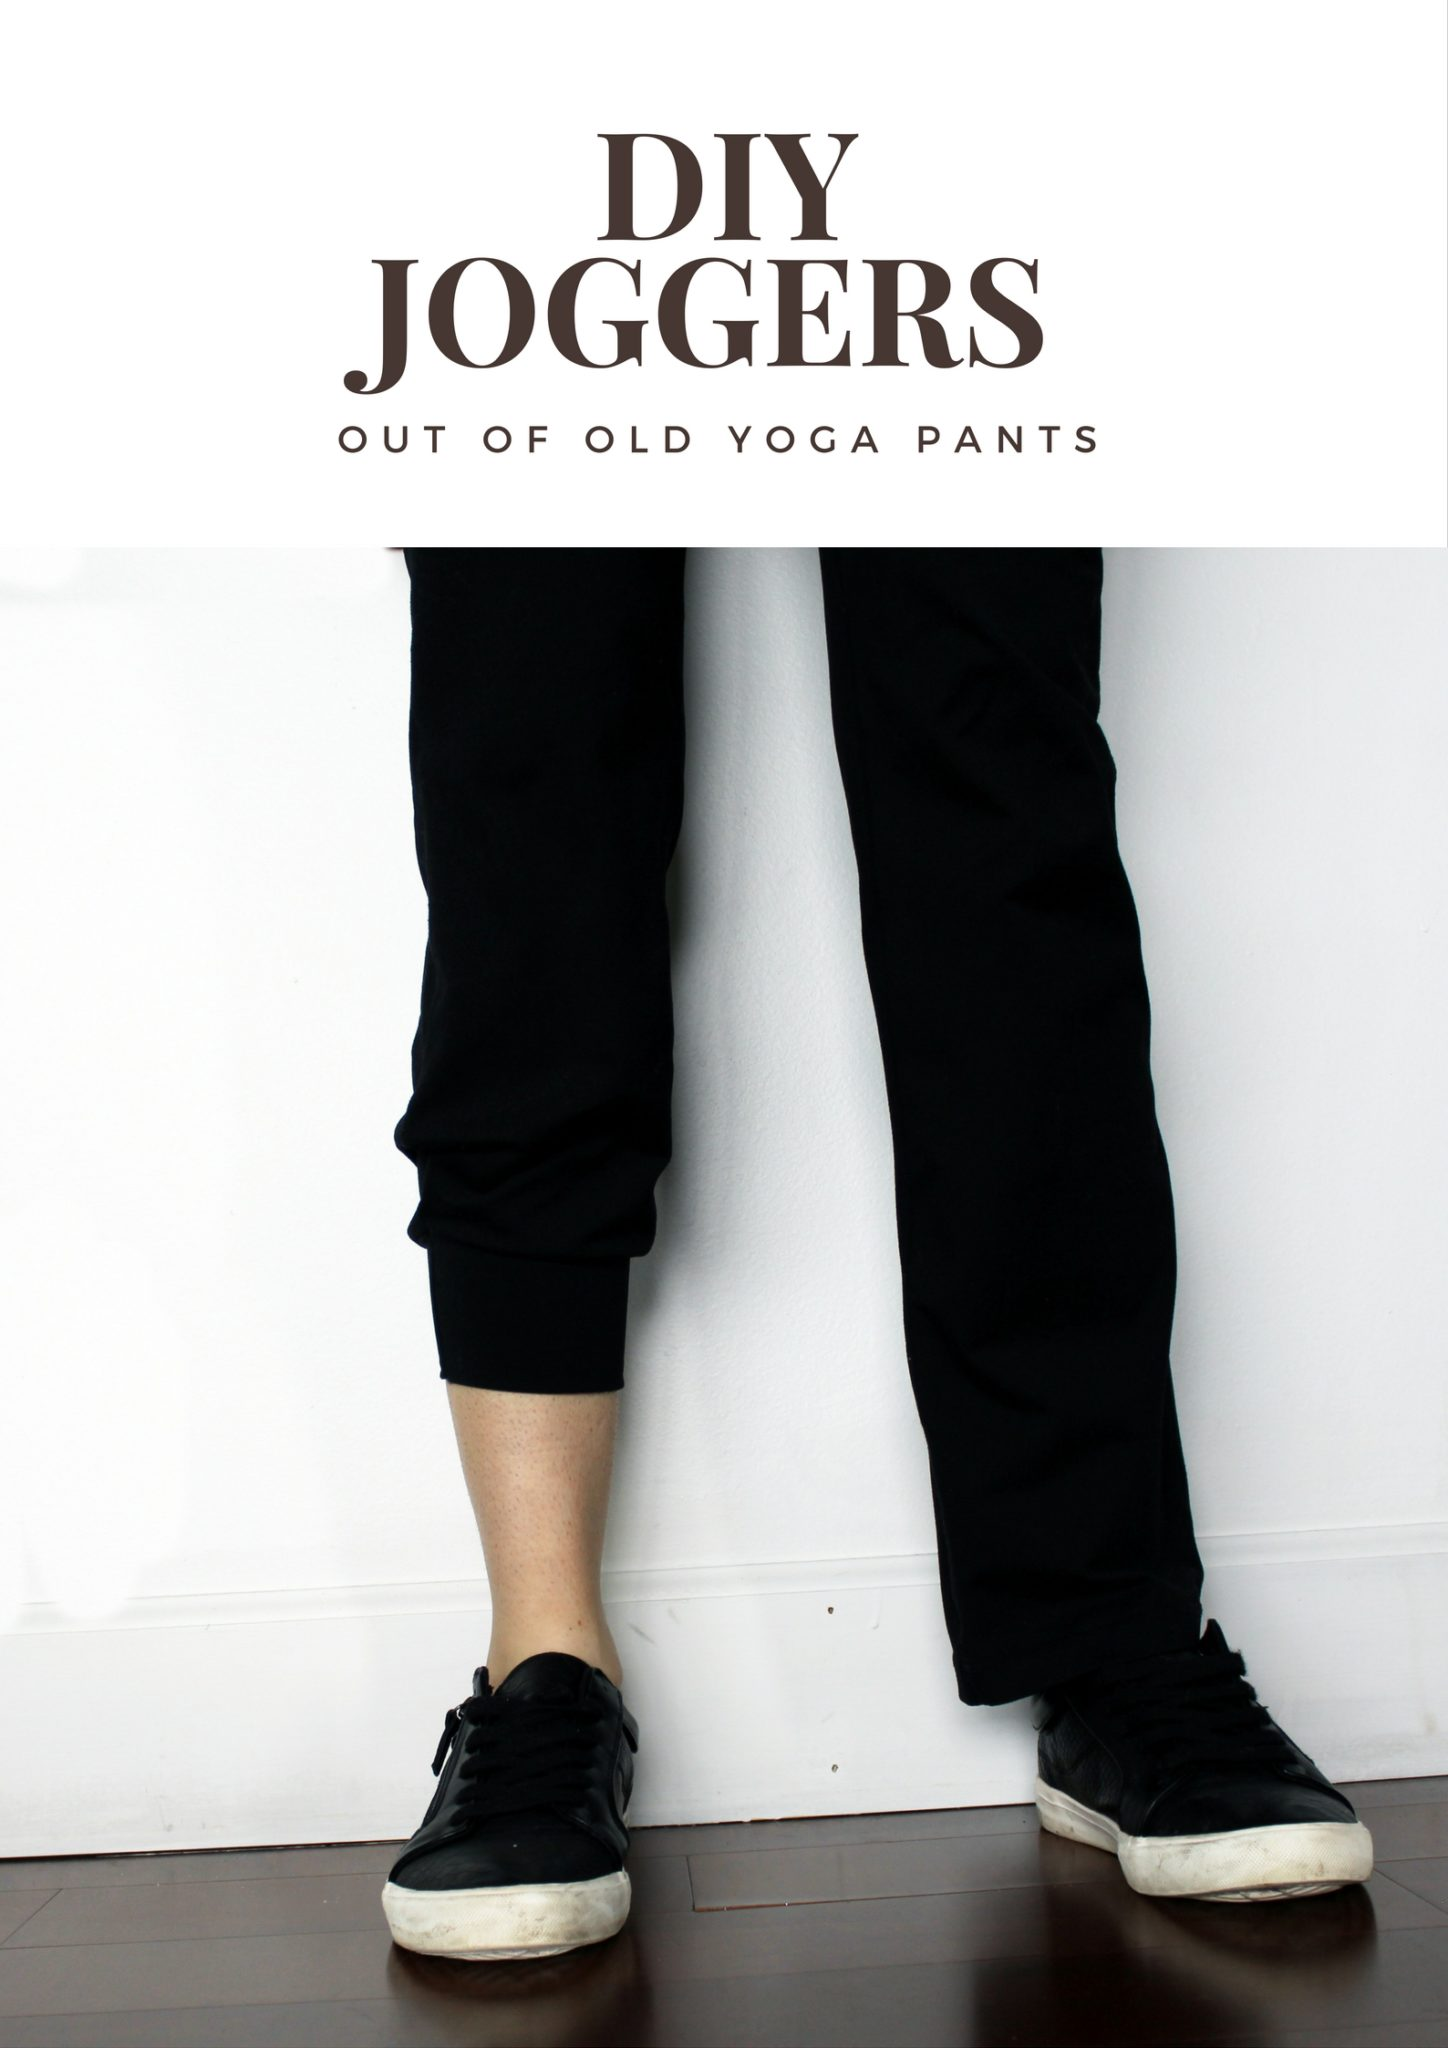 Diy Turn Your Old Yoga Pants Into Joggers Creative